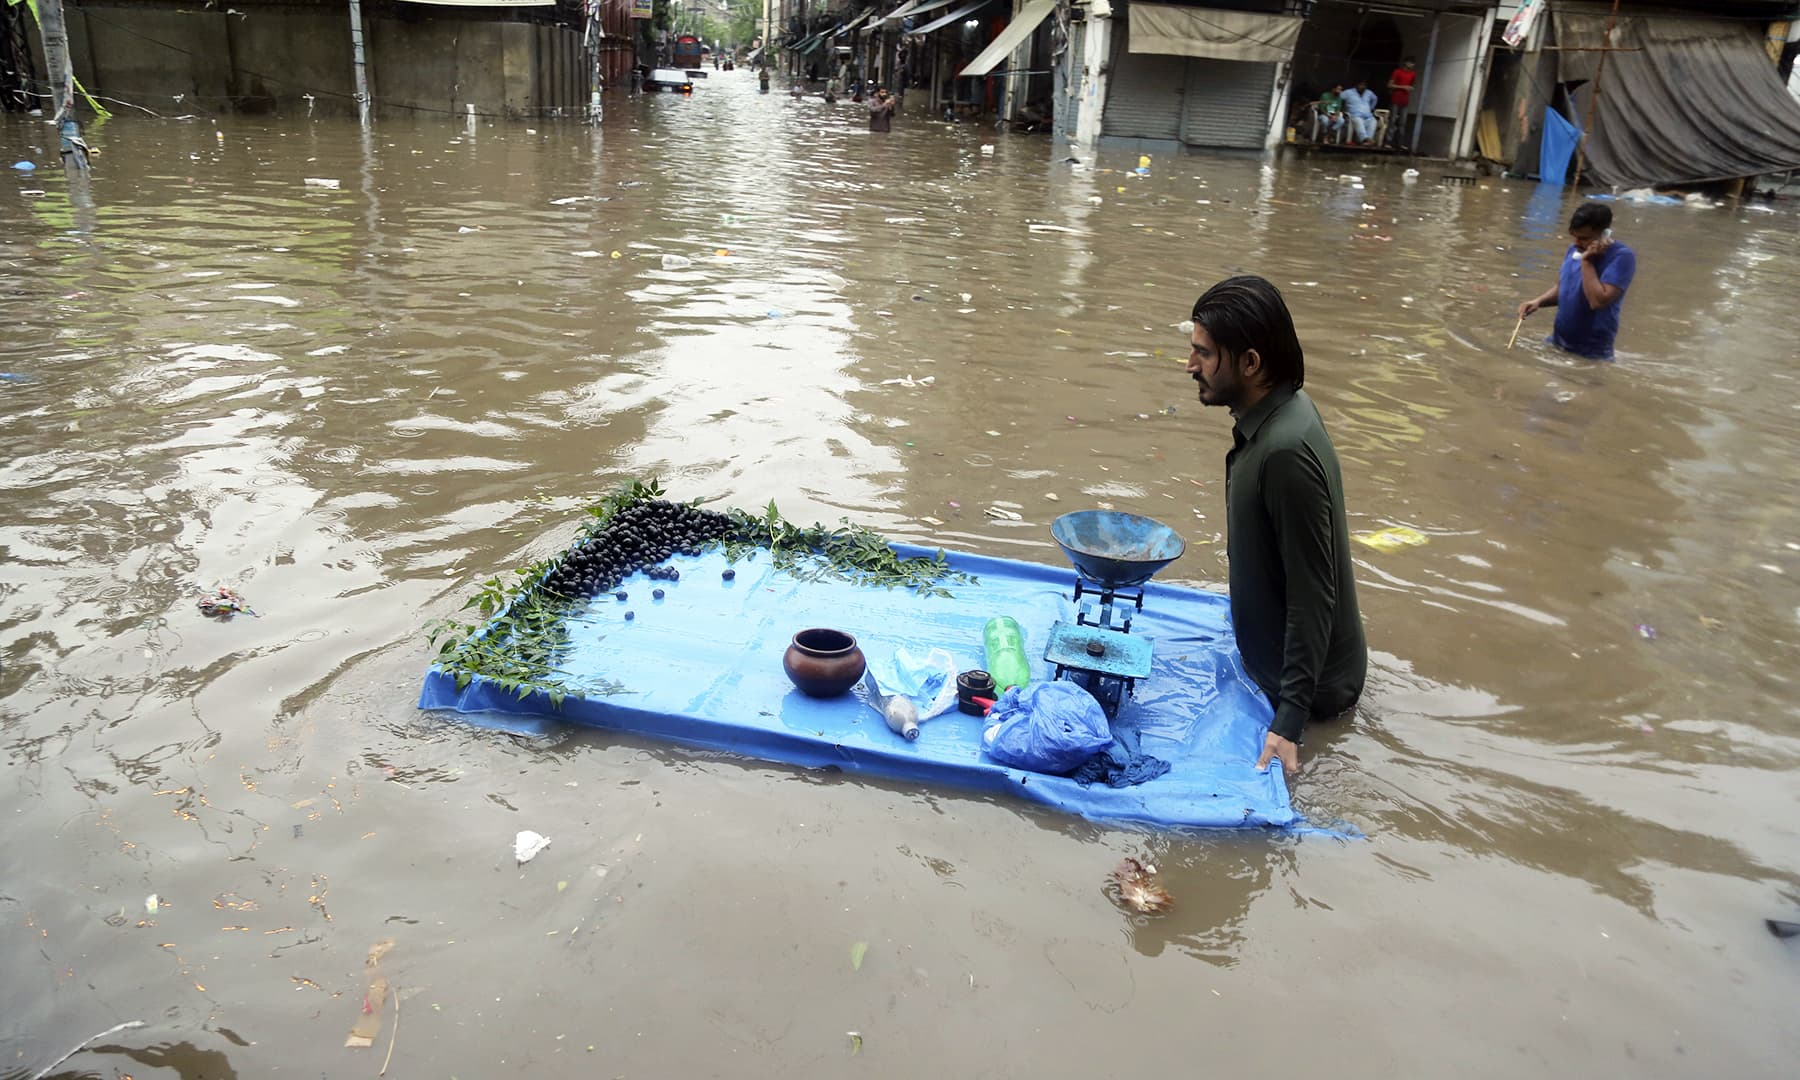 A vendor pushes his cart through a flooded street after heavy rainfall in Lahore. — Reuters